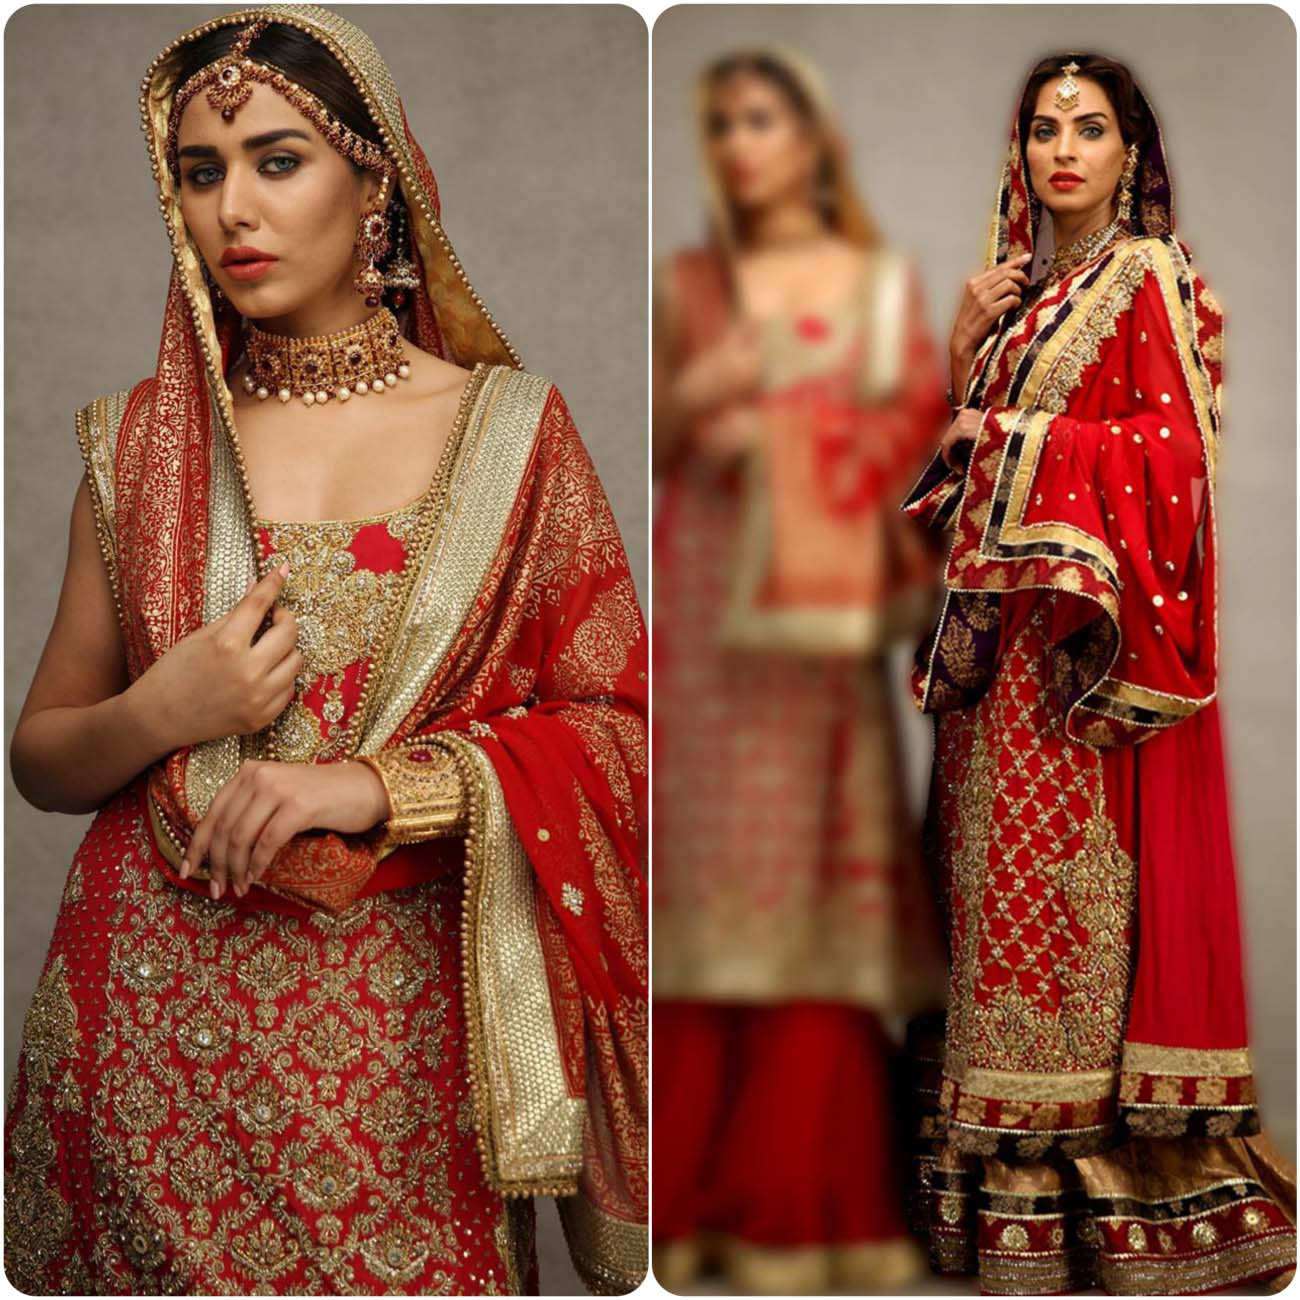 Deepak perwani Wedding Dresses Collection Fo Women 2016-2017...styloplanet (13)